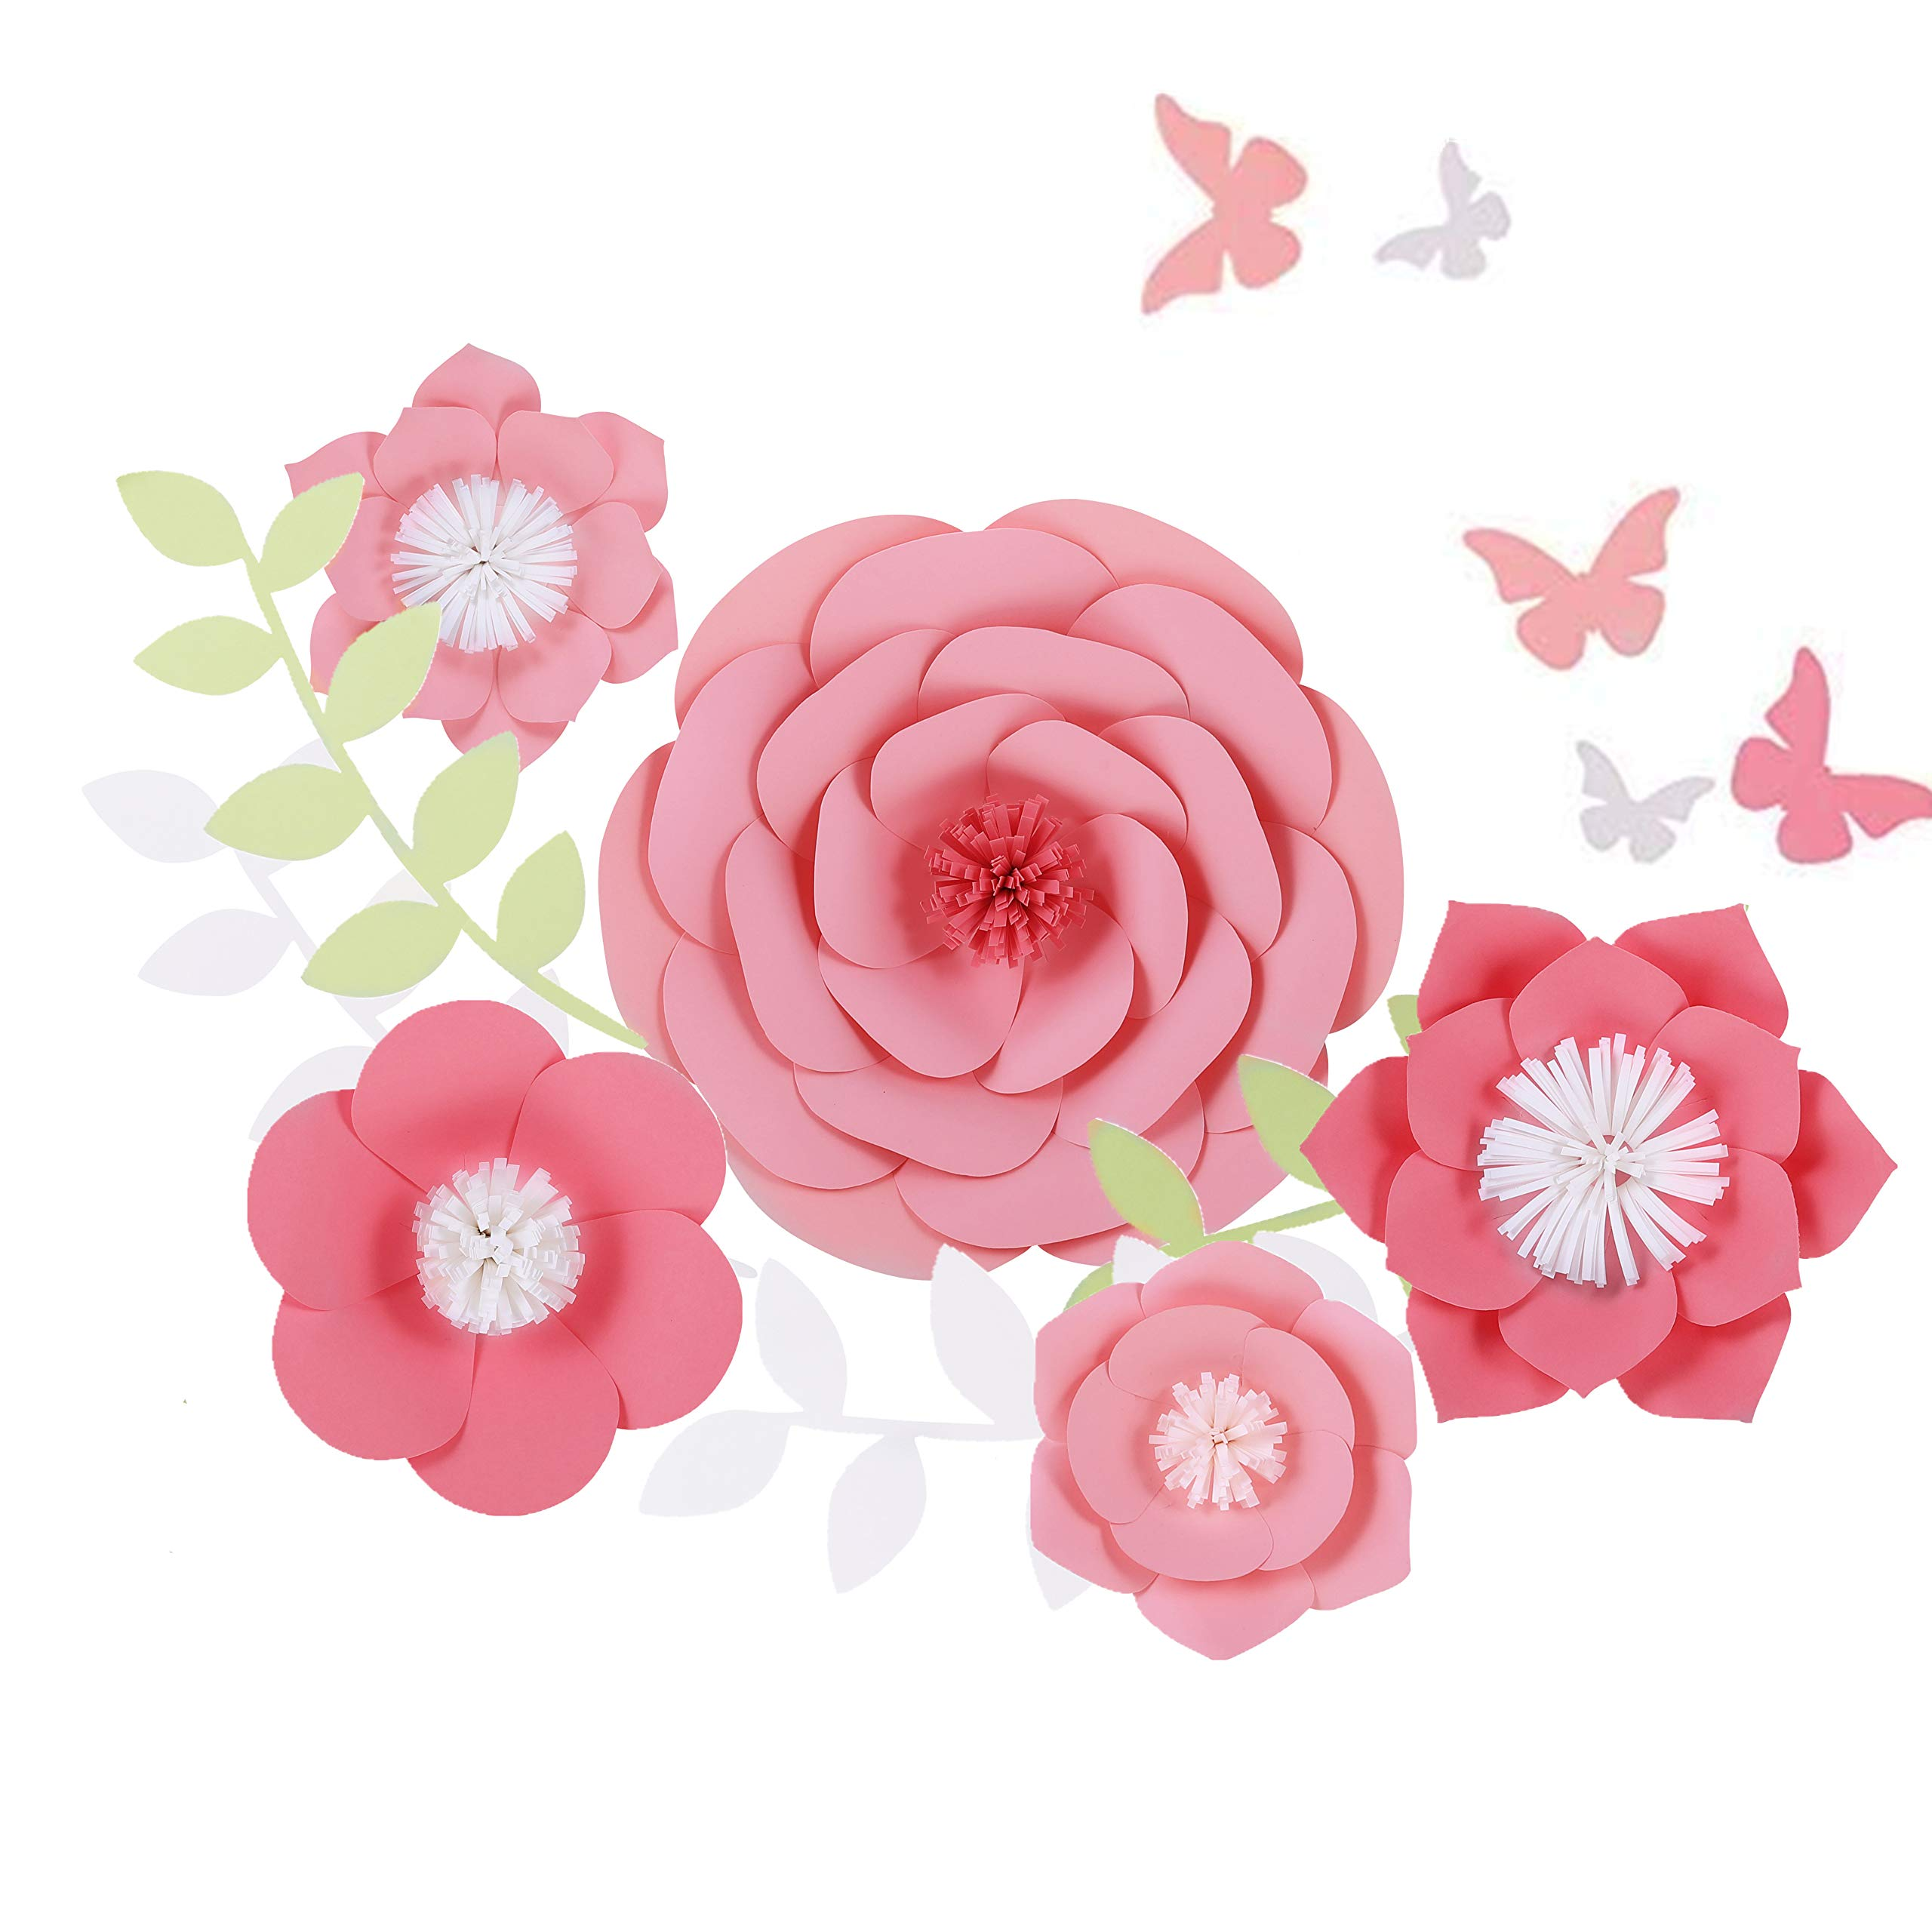 Fonder Mols Paper Flowers Decorations 5pcs 3D Pink Paper Peony Flowers - Nursery Wall Decor - Paper Flower Decor - Girls room wall decor - Baby Shower - Wedding Decor by Fonder Mols